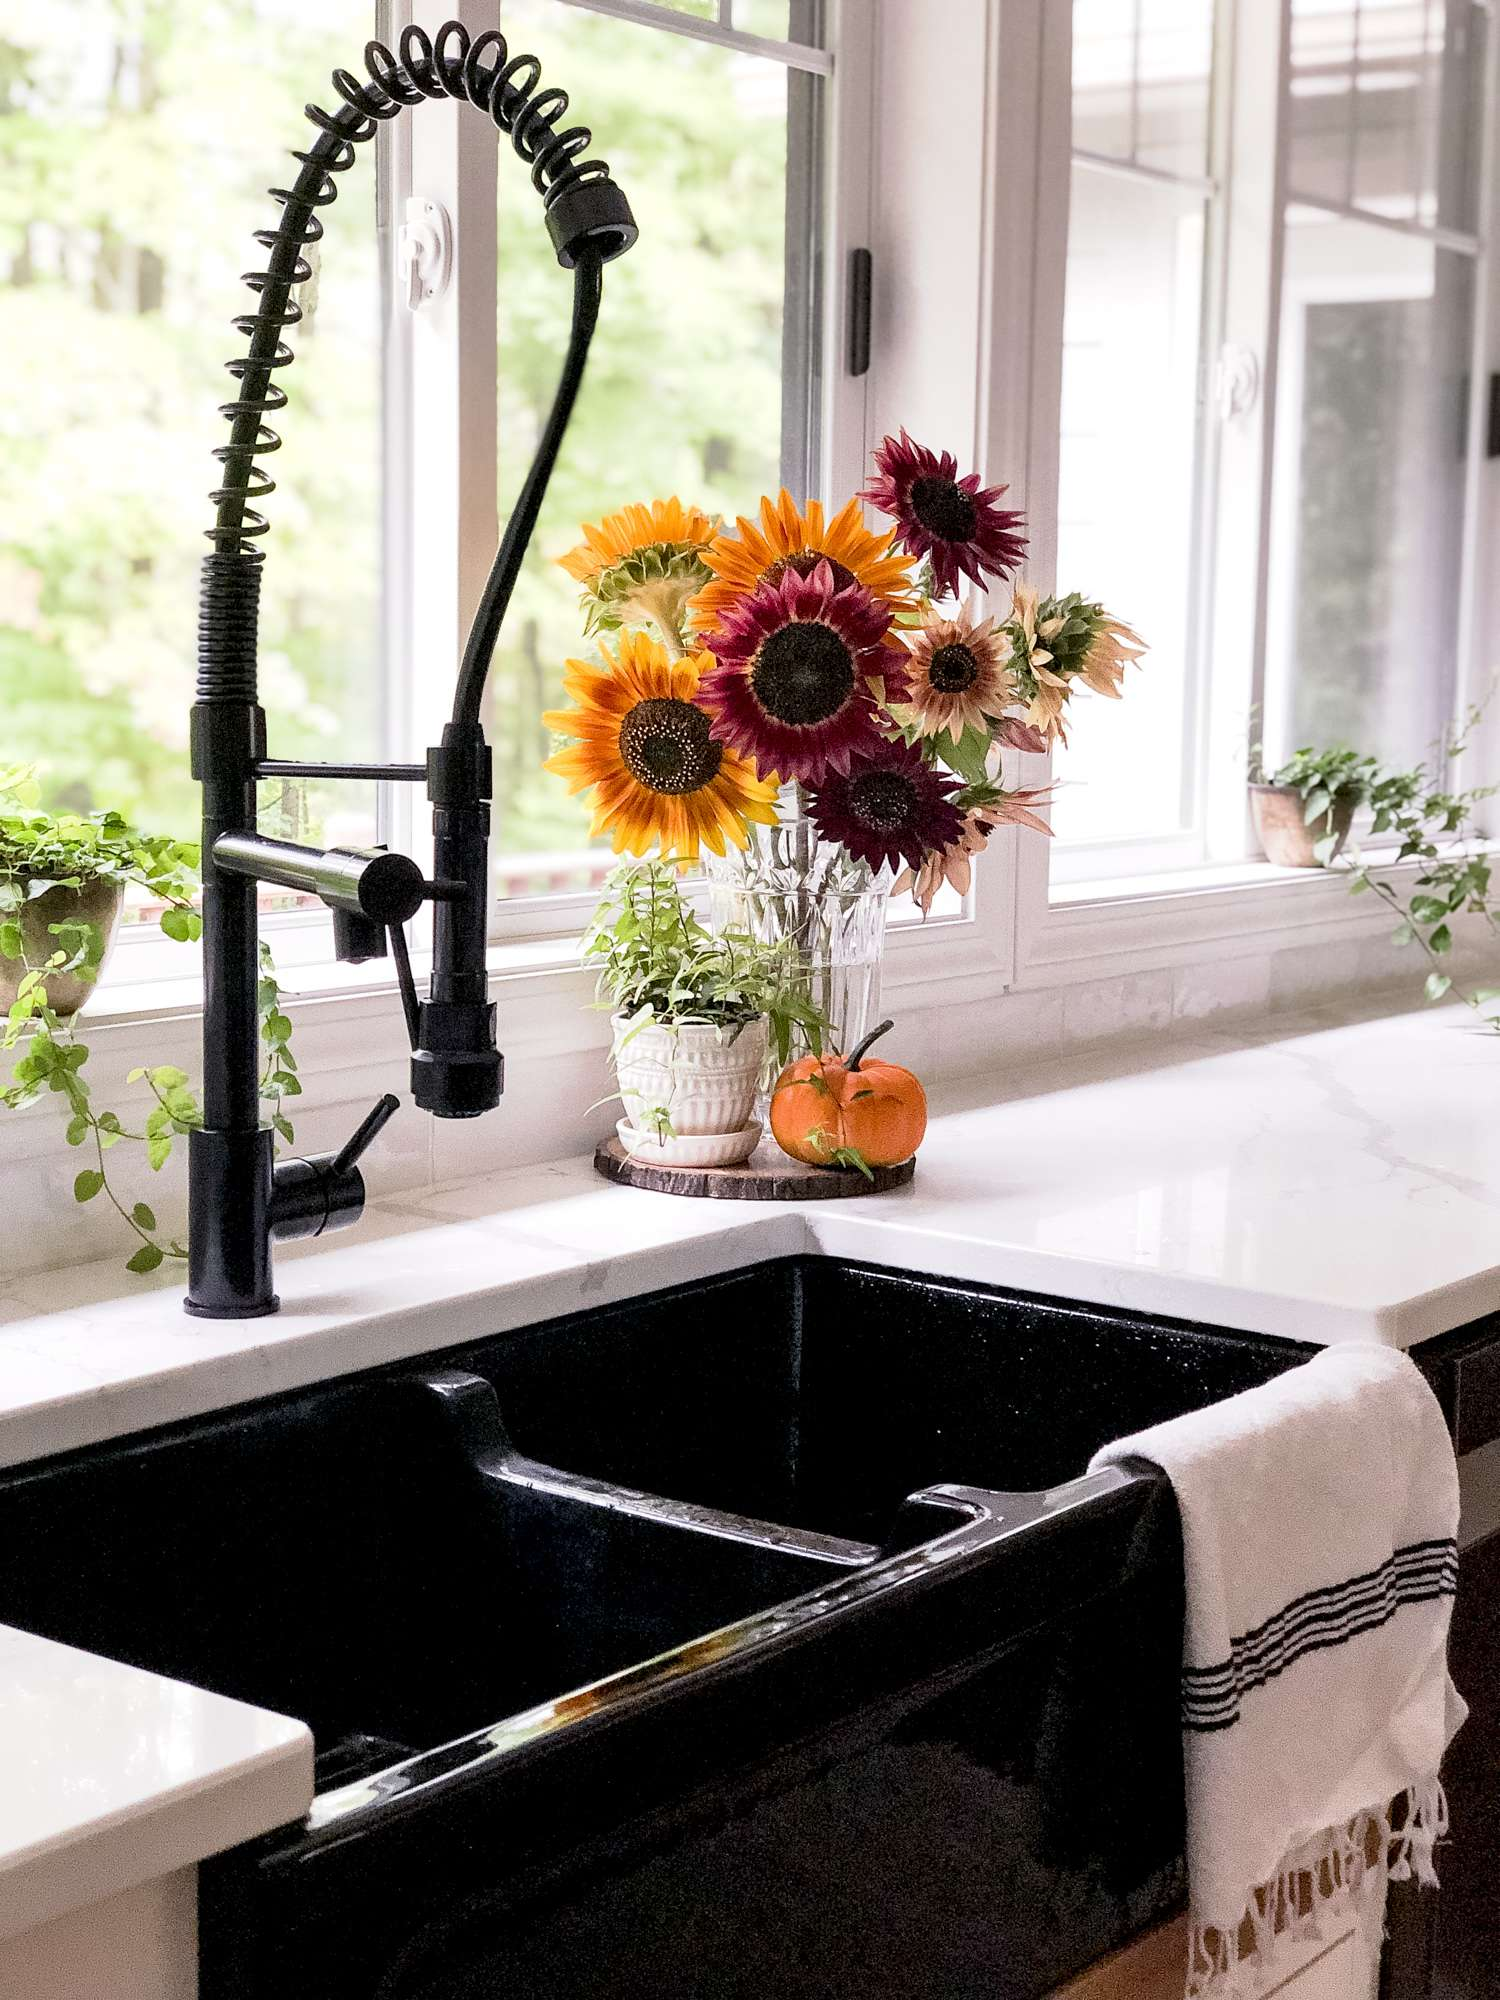 Sunflowers in a farmhouse kitchen